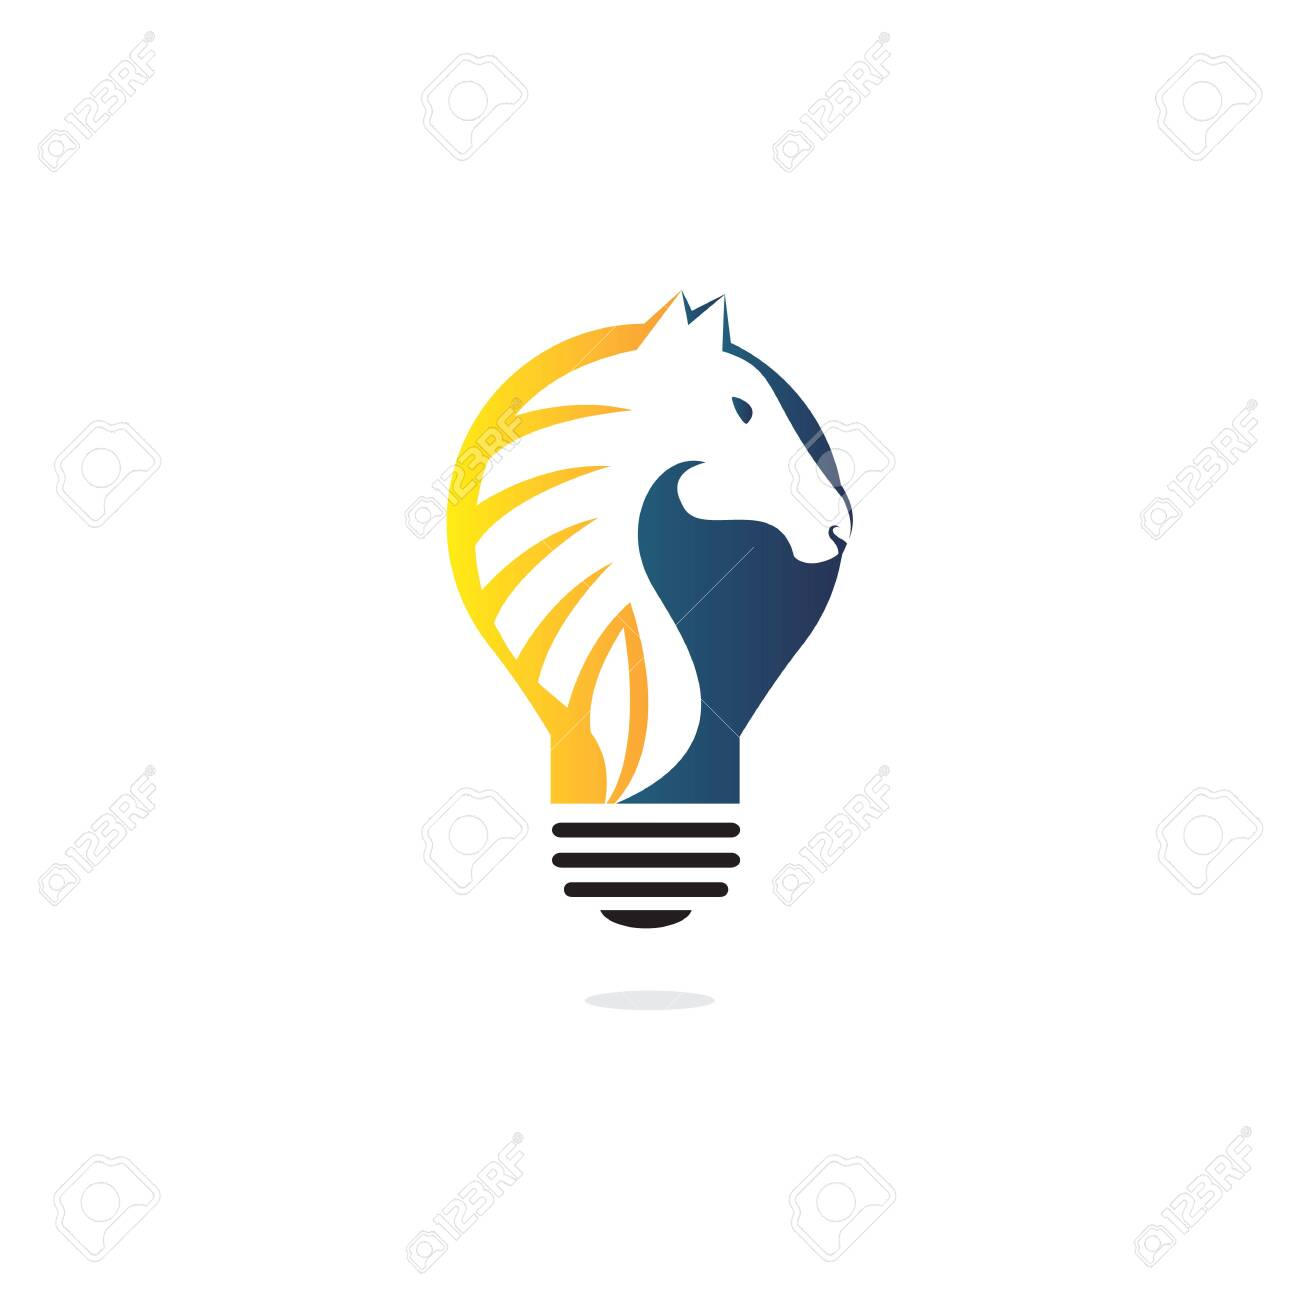 Light Bulb And Horse Logo Design Wild Ideas Logo Concept Royalty Free Cliparts Vectors And Stock Illustration Image 142847681